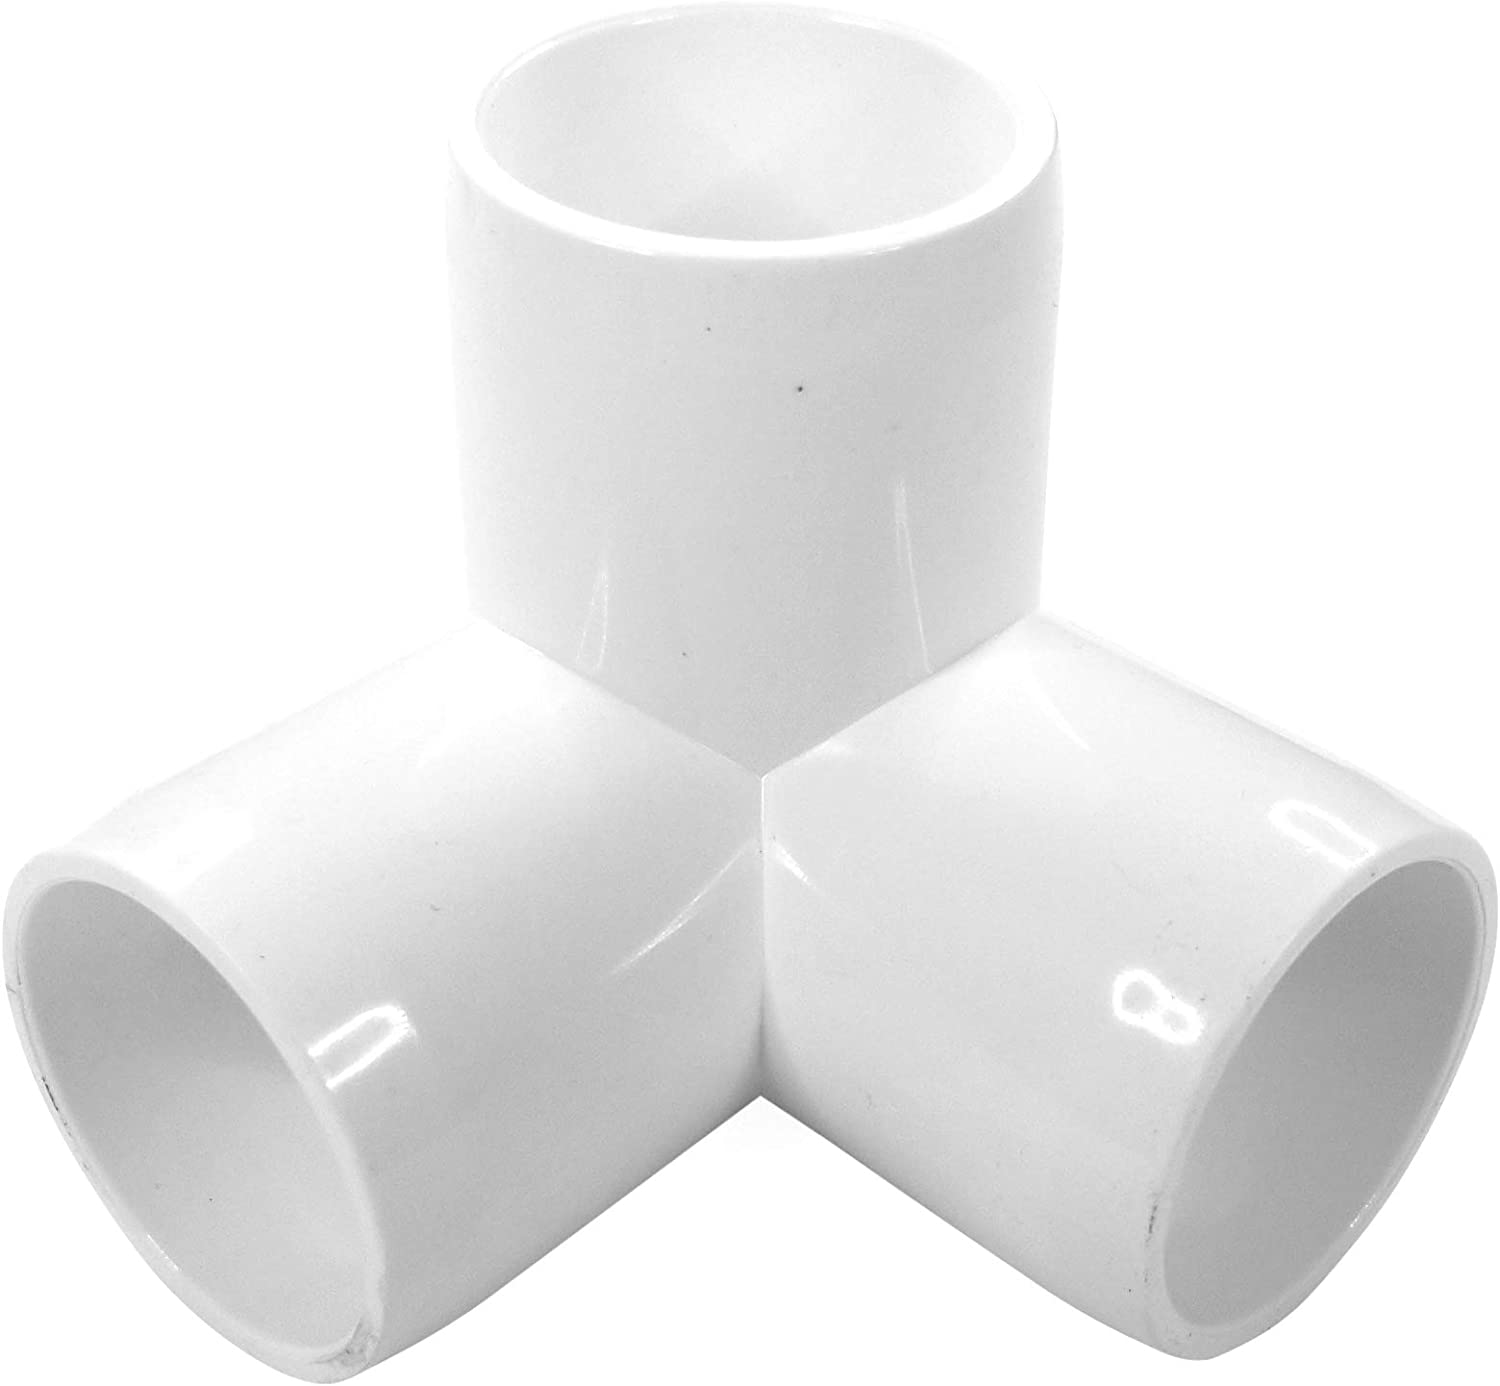 (10-PACK) 3Way 1 inch SCH40 PVC Fitting Elbow - Build Heavy Duty PVC Furniture - PVC Elbow Fittings (1 Inch)